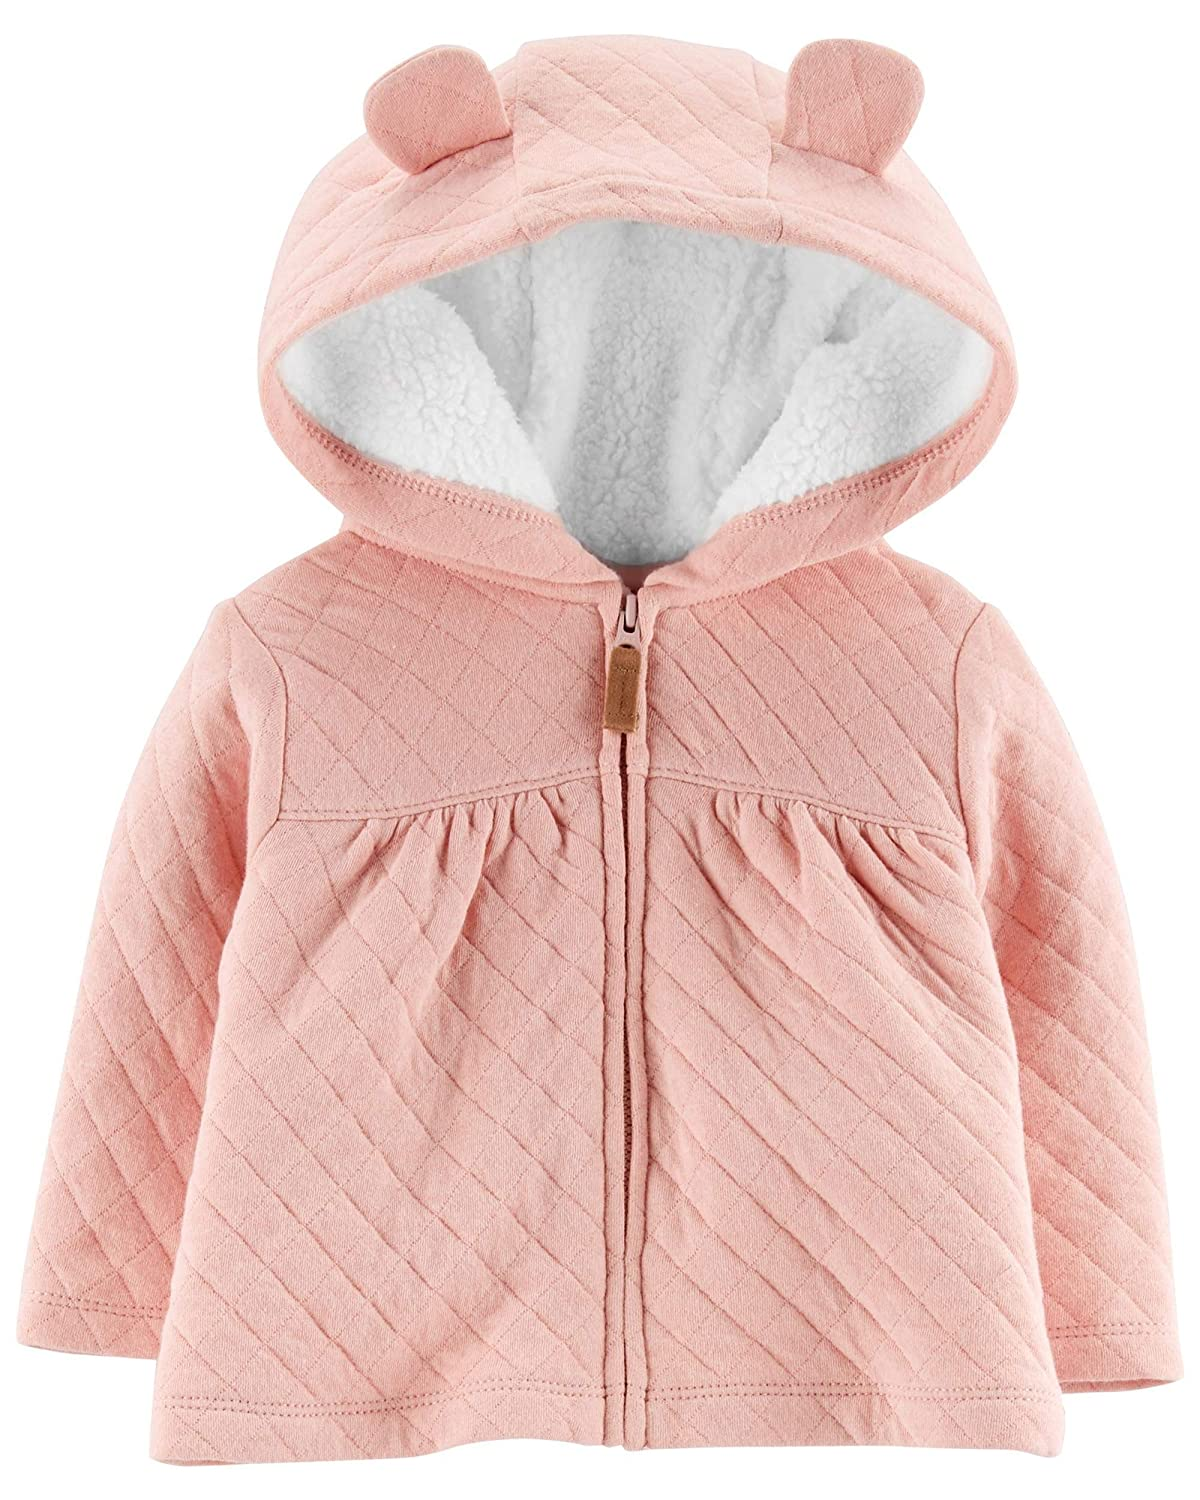 Carters Baby Girls Zip-Up Quilted Heather Jacket Pink